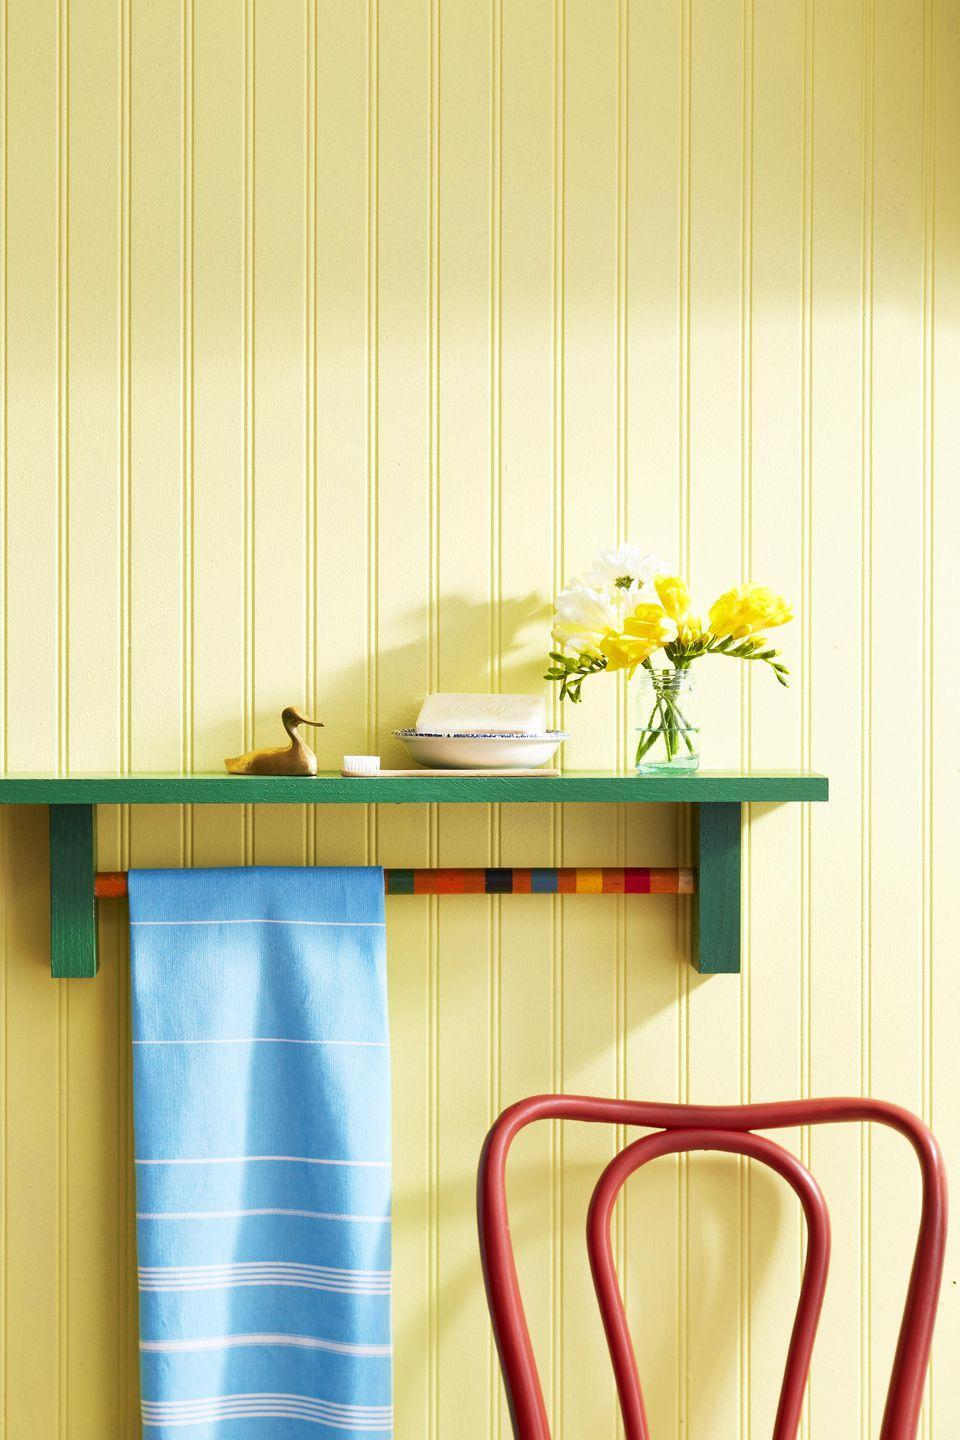 <p>A bathroom get an instant upgrade with the addition of this bright and cherry towel rack. Paint the wood any color desired.<strong><br></strong></p><p><strong>To make:</strong> Cut a 1-by-5-inch piece of wood 27 inches long. Cut a piece of 2 1/2-by-1 1/4 wood into two 5 1/2-inch-long segments; drill a 1-inch hole 1 inch deep in centers of each. Cut mallet handle 20 inches long, and fit in holes; glue in place. Glue blocks to top shelf. Paint desired color.</p>